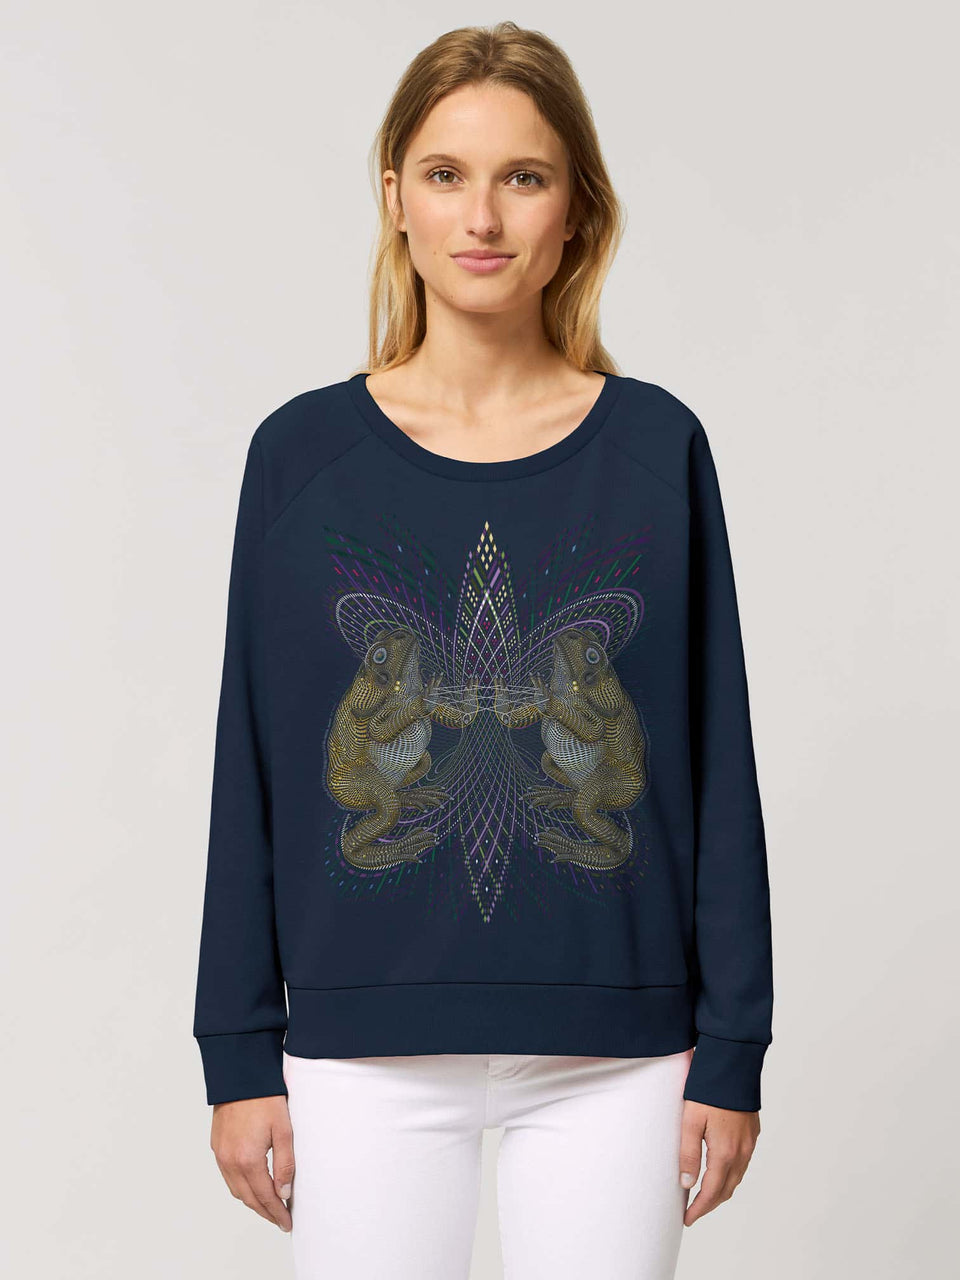 Bufo Alvarius Made To Order  Women relaxed fit sweatshirt - French Navy